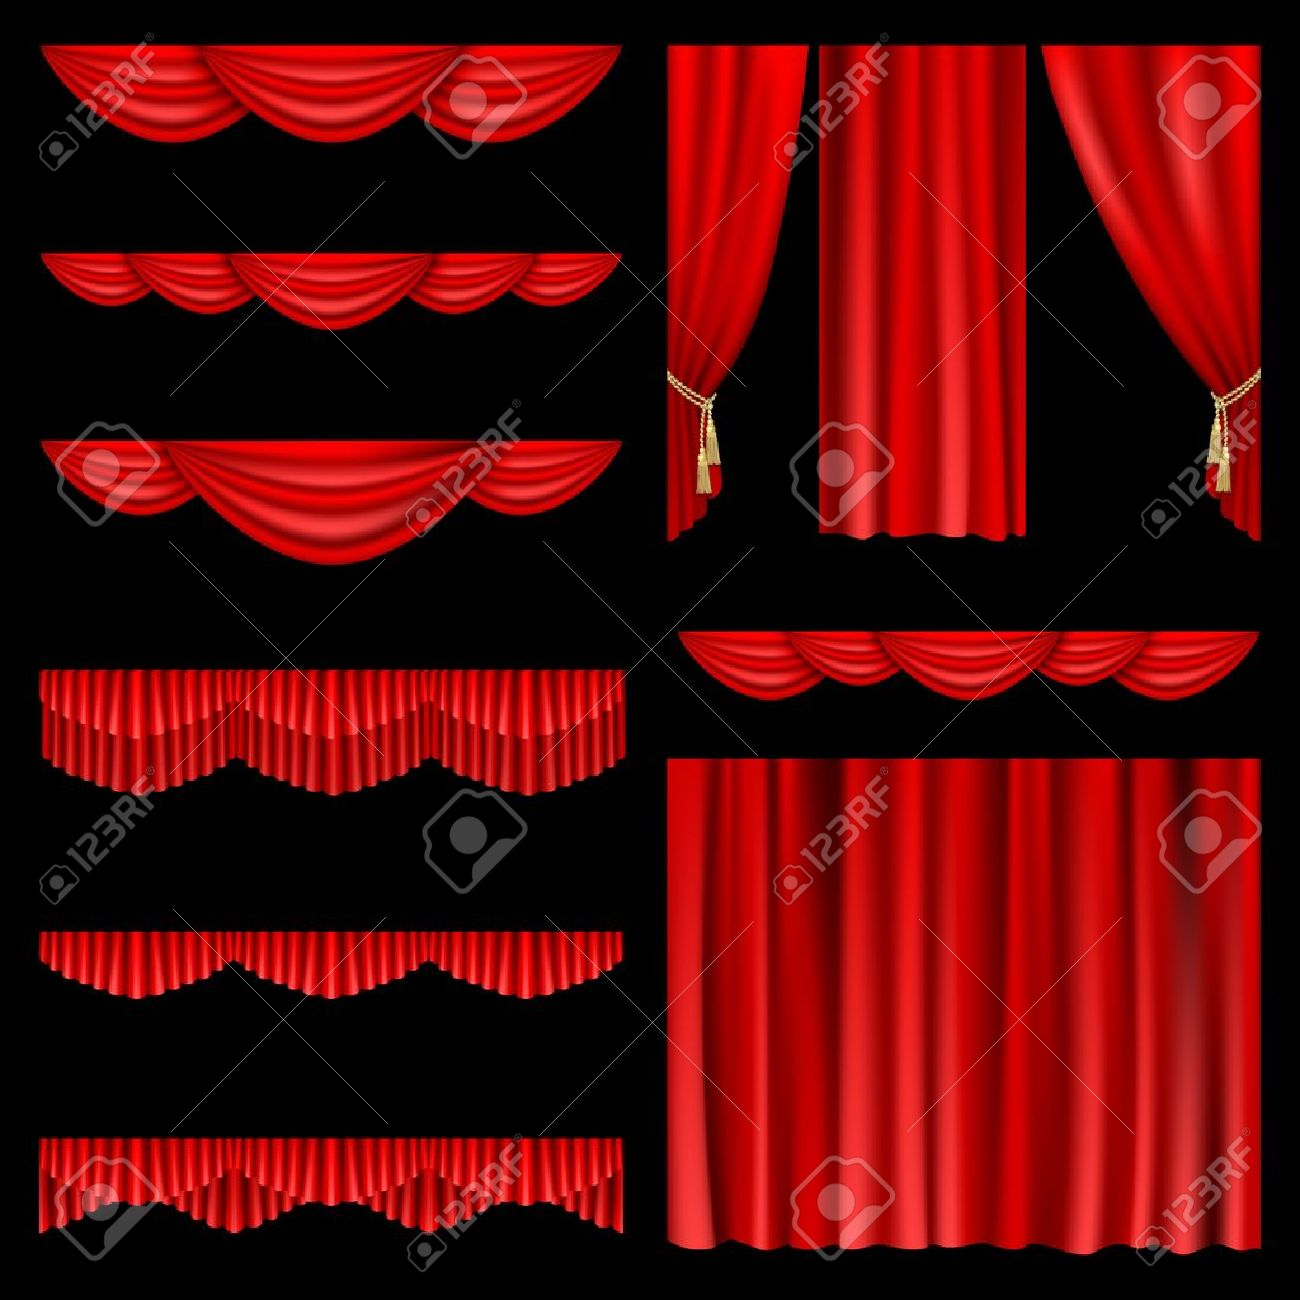 Black theatre curtain - Theatre Curtain Set Of Red Curtains To Theater Stage Mesh